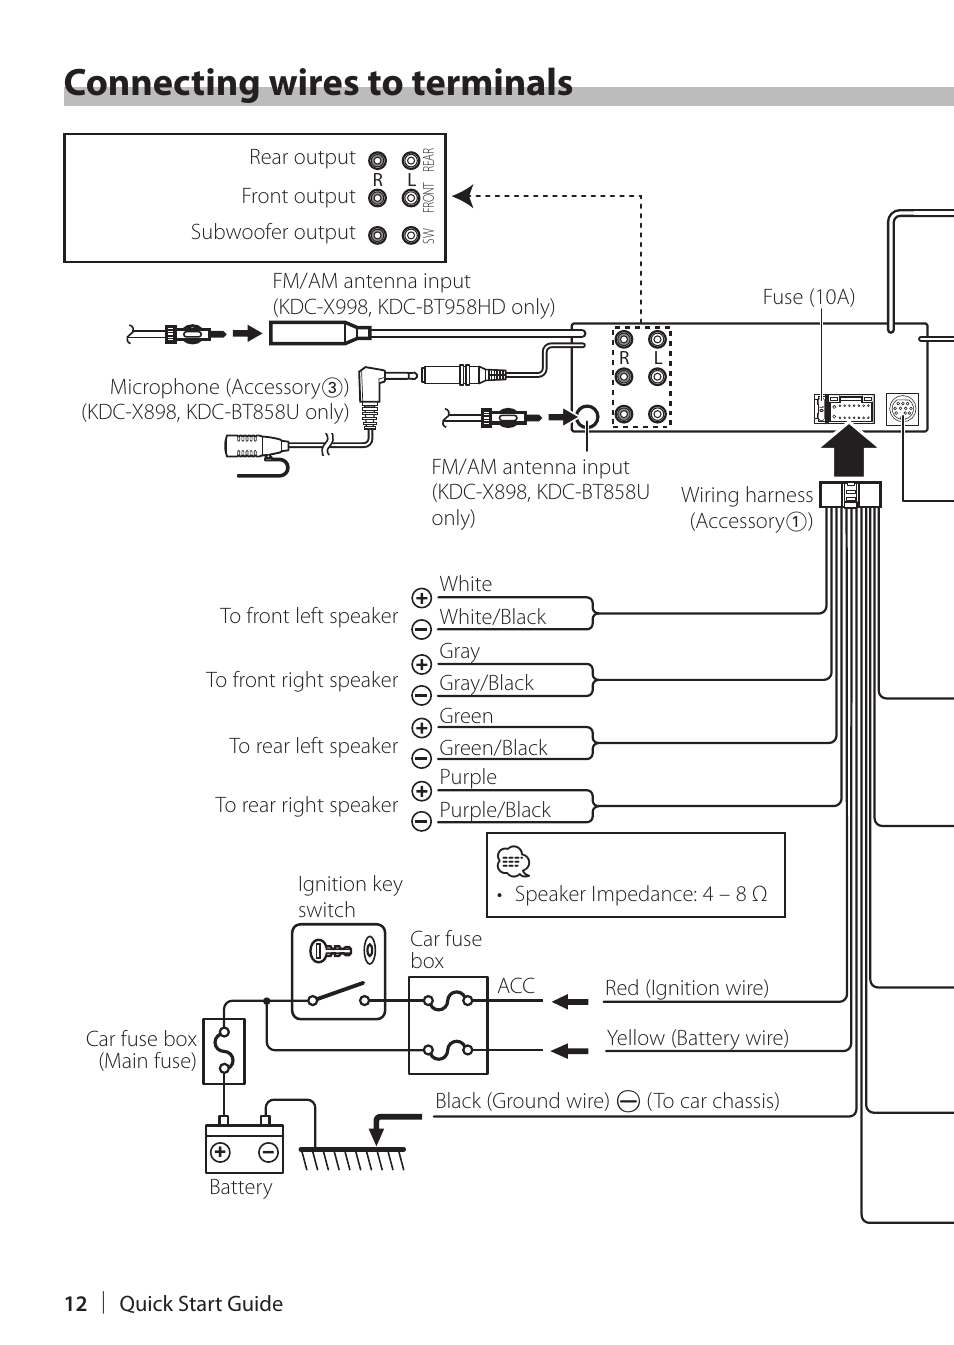 kenwood kdc x wiring diagram kenwood image connecting wires to terminals kenwood kdc x898 user manual on kenwood kdc x898 wiring diagram